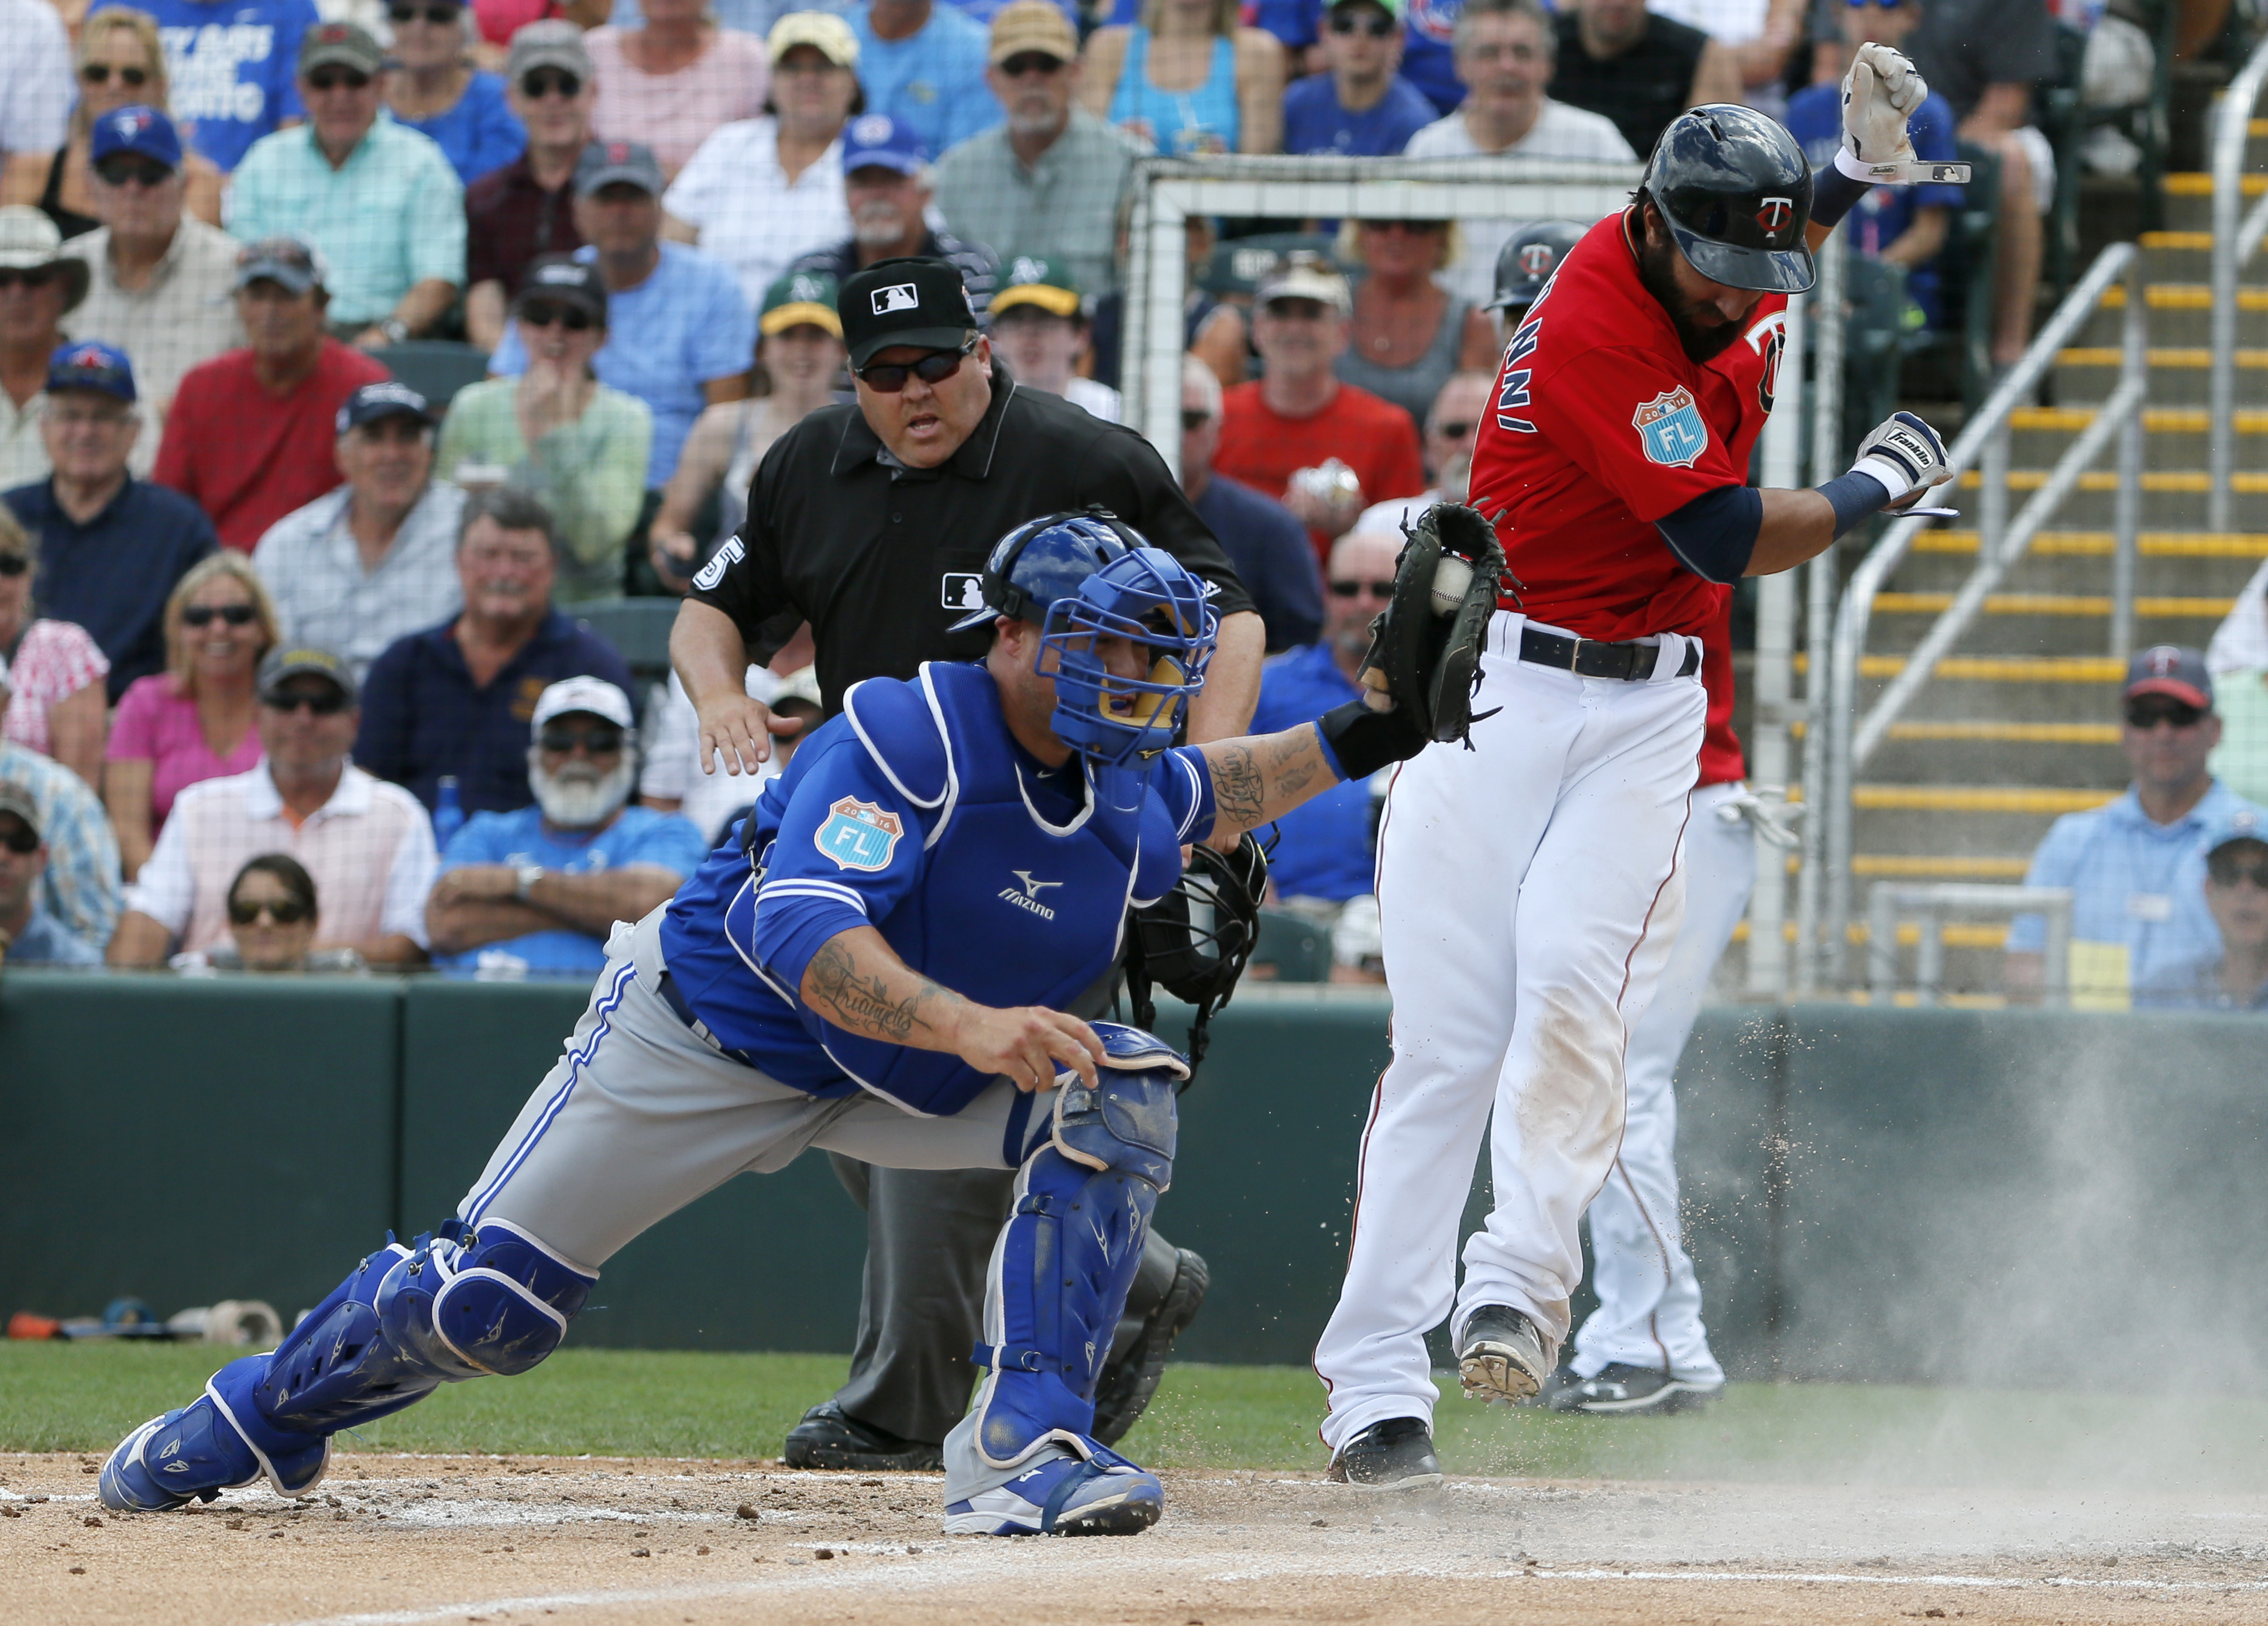 Minnesota Twins' Darin Mastroianni avoids a tag attempt by Toronto Blue Jays' Humberto Quintero as umpire Fieldin Culbreth watches in the second inning of a spring training baseball game, Wednesday, March 30, 2016, in Fort Myers, Fla. Mastroianni and Kurt